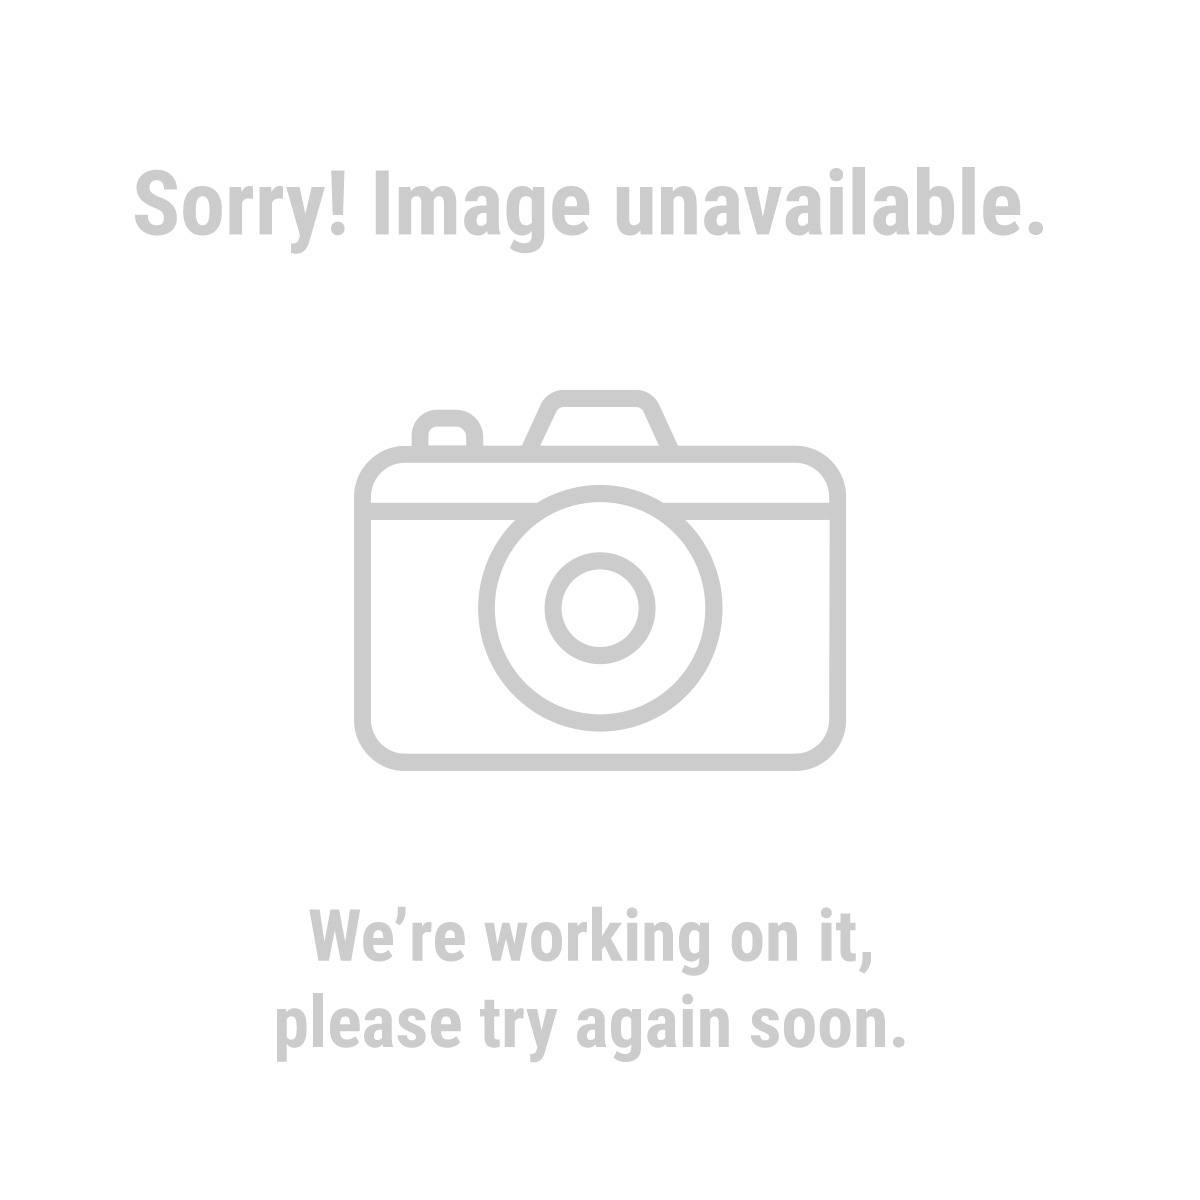 Pittsburgh Motorcycle 68892 1000 Lb. Capacity Motorcycle Lift